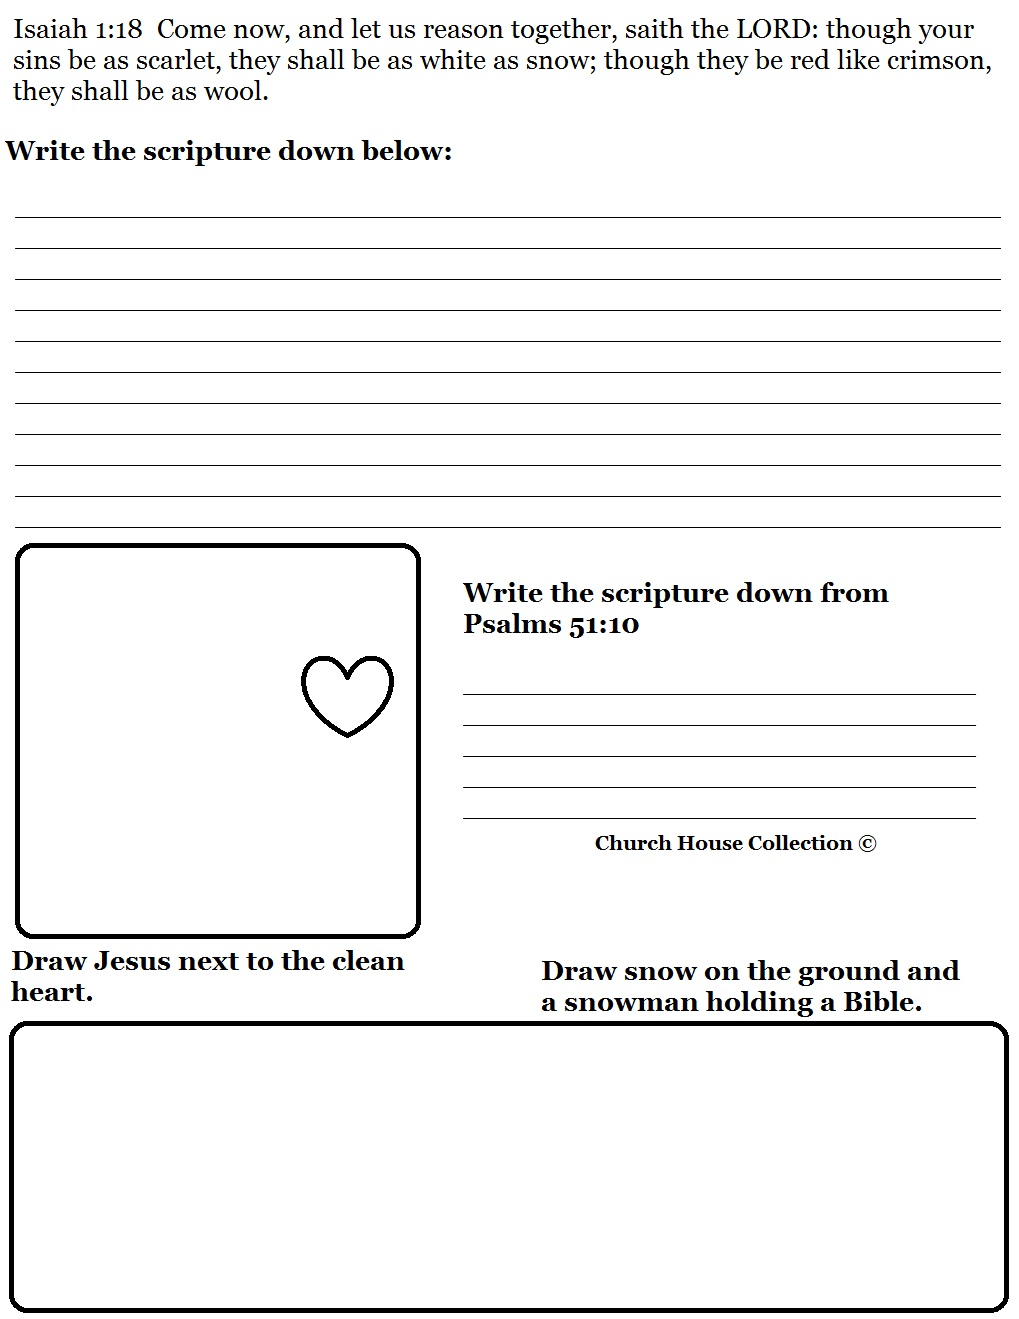 Worksheets Children Bible Study Worksheets snowman sunday school lesson free christmas activity page worksheet printable template for kids in by church house